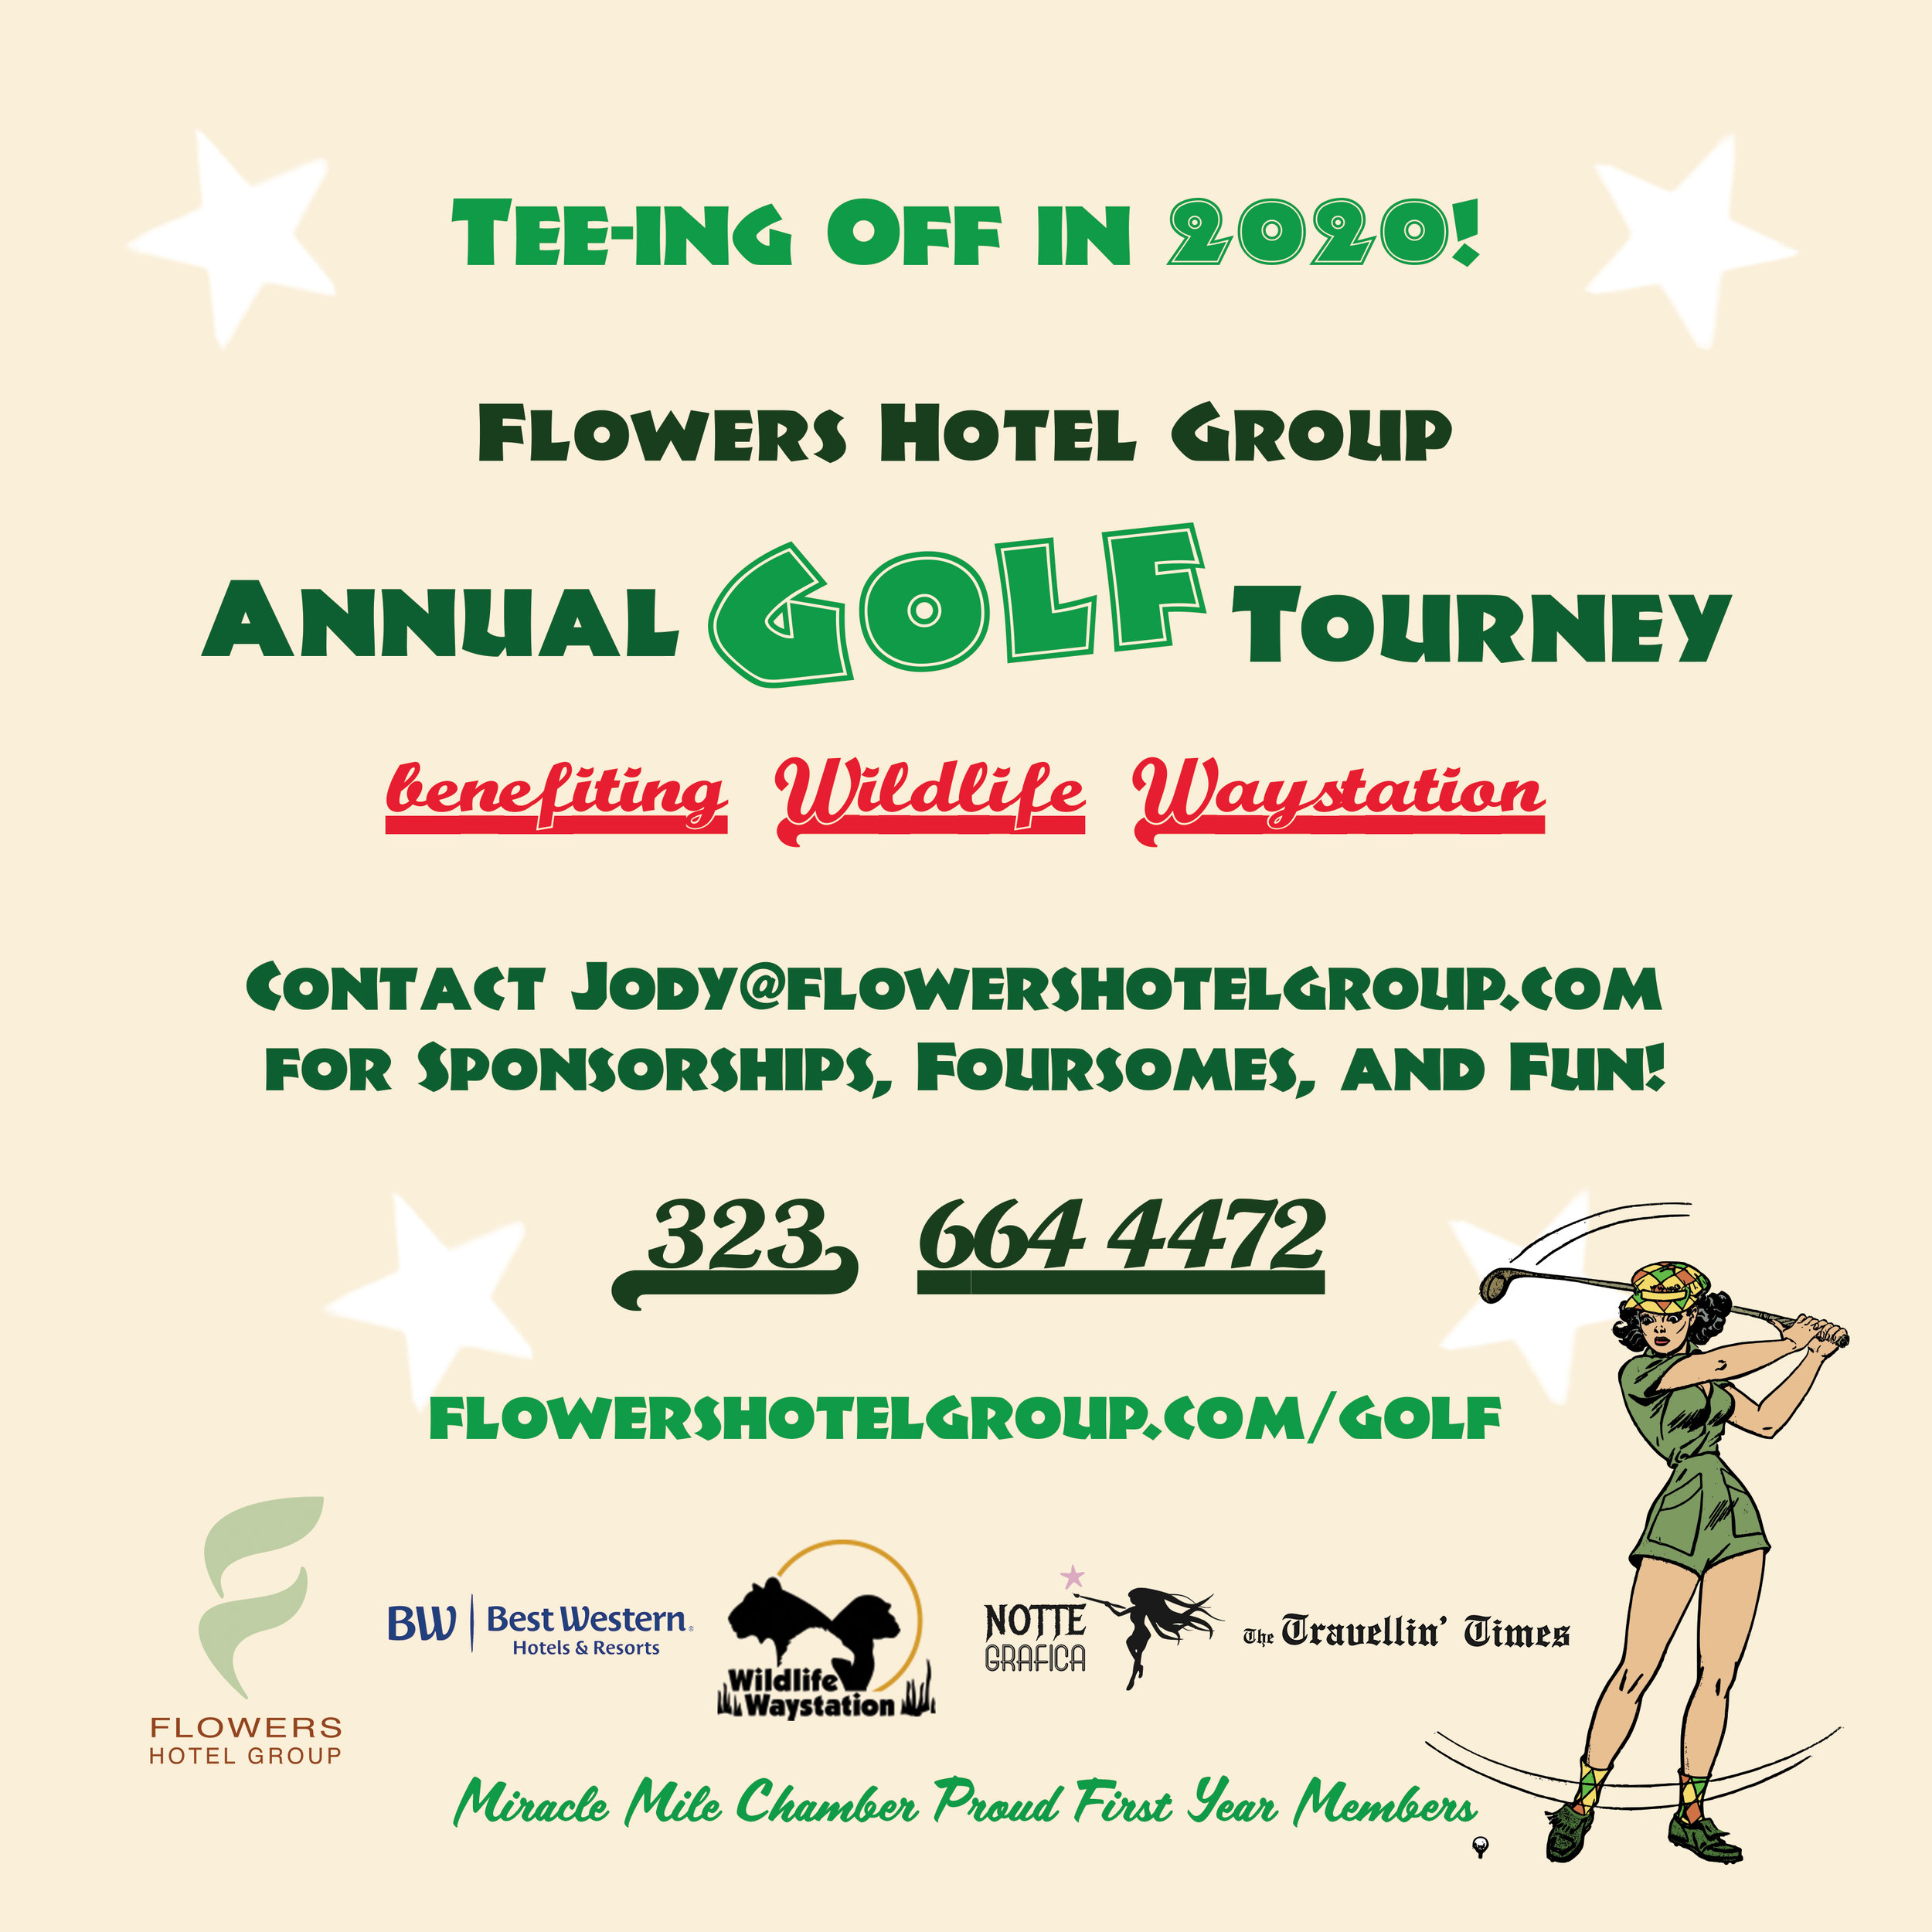 Flowers Hotel Group GOLF 2020.jpg